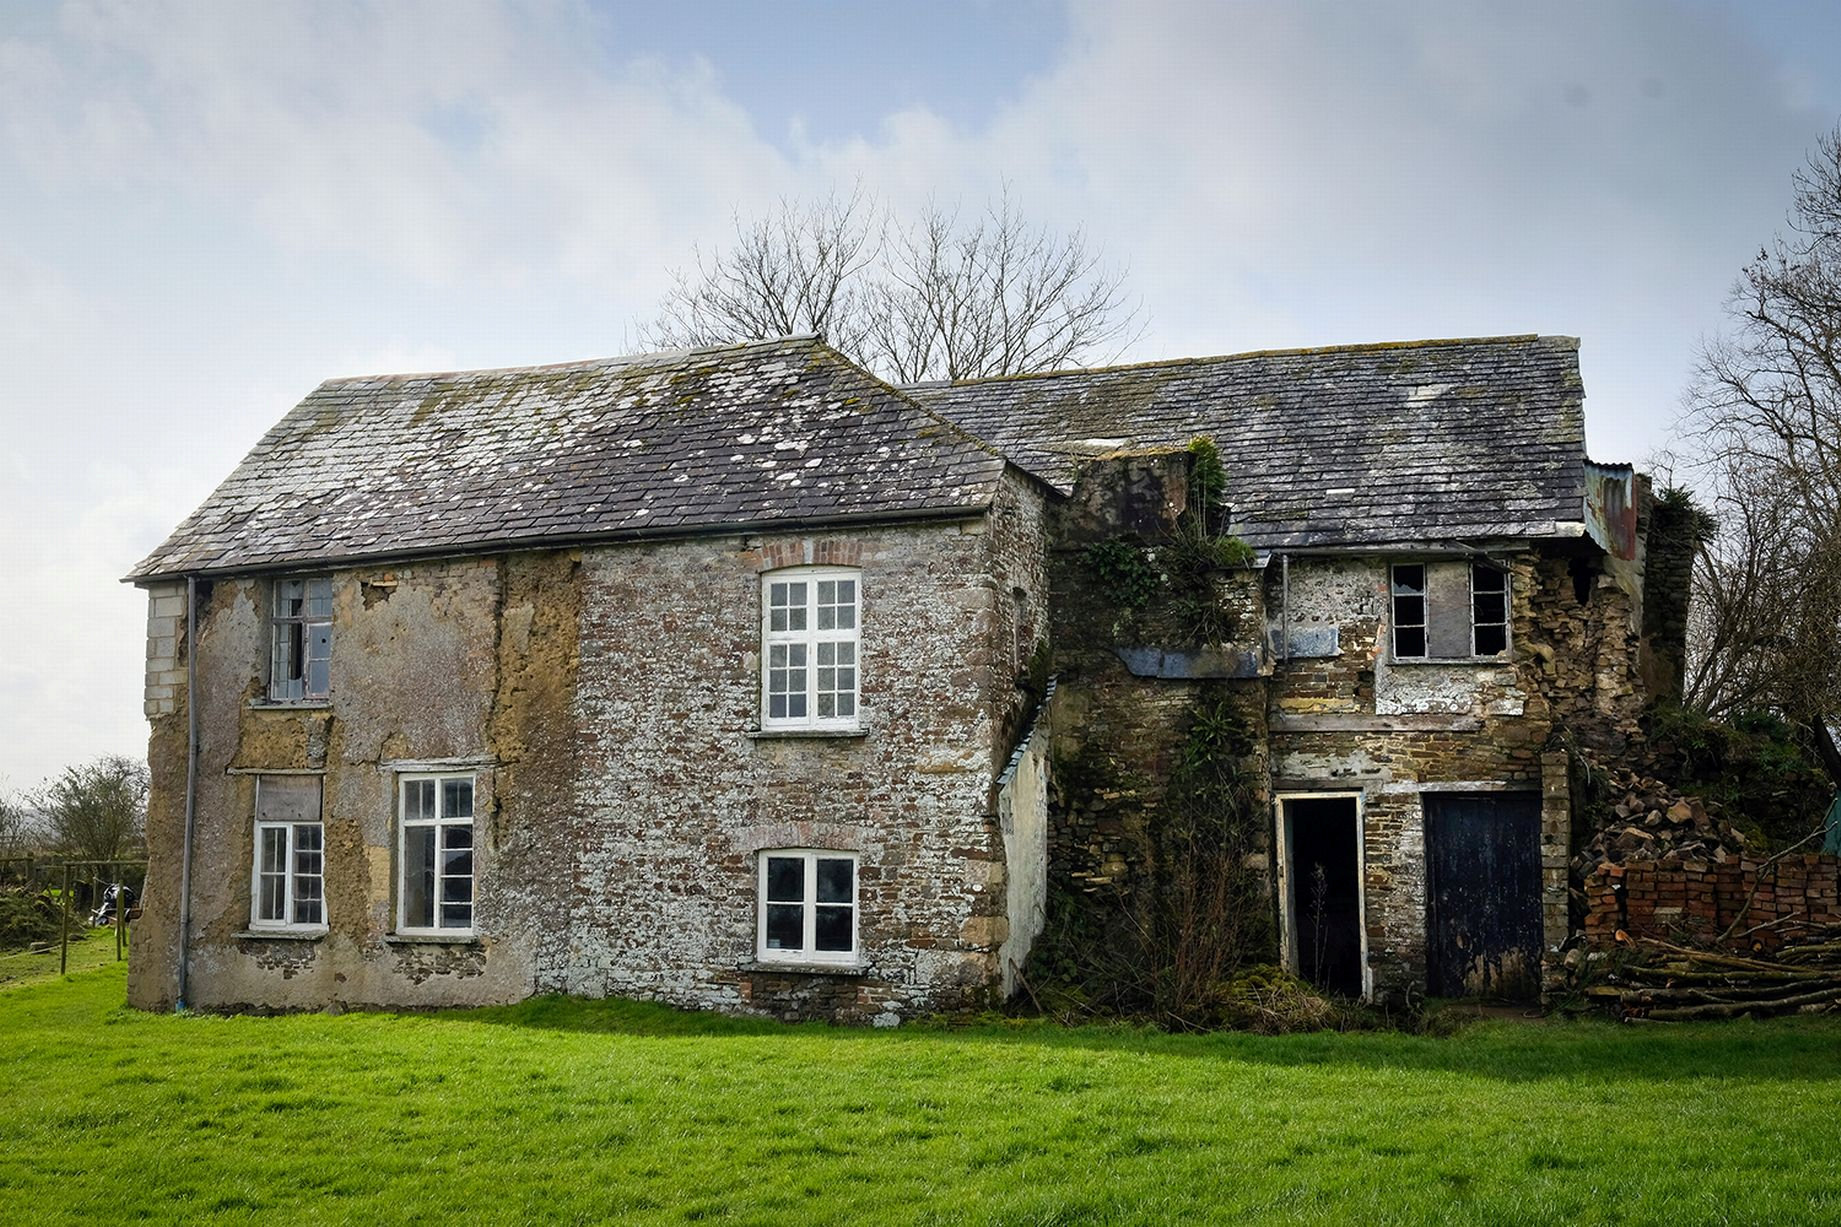 Abandoned Uk Home So Haunted The Owner Says Good Morning